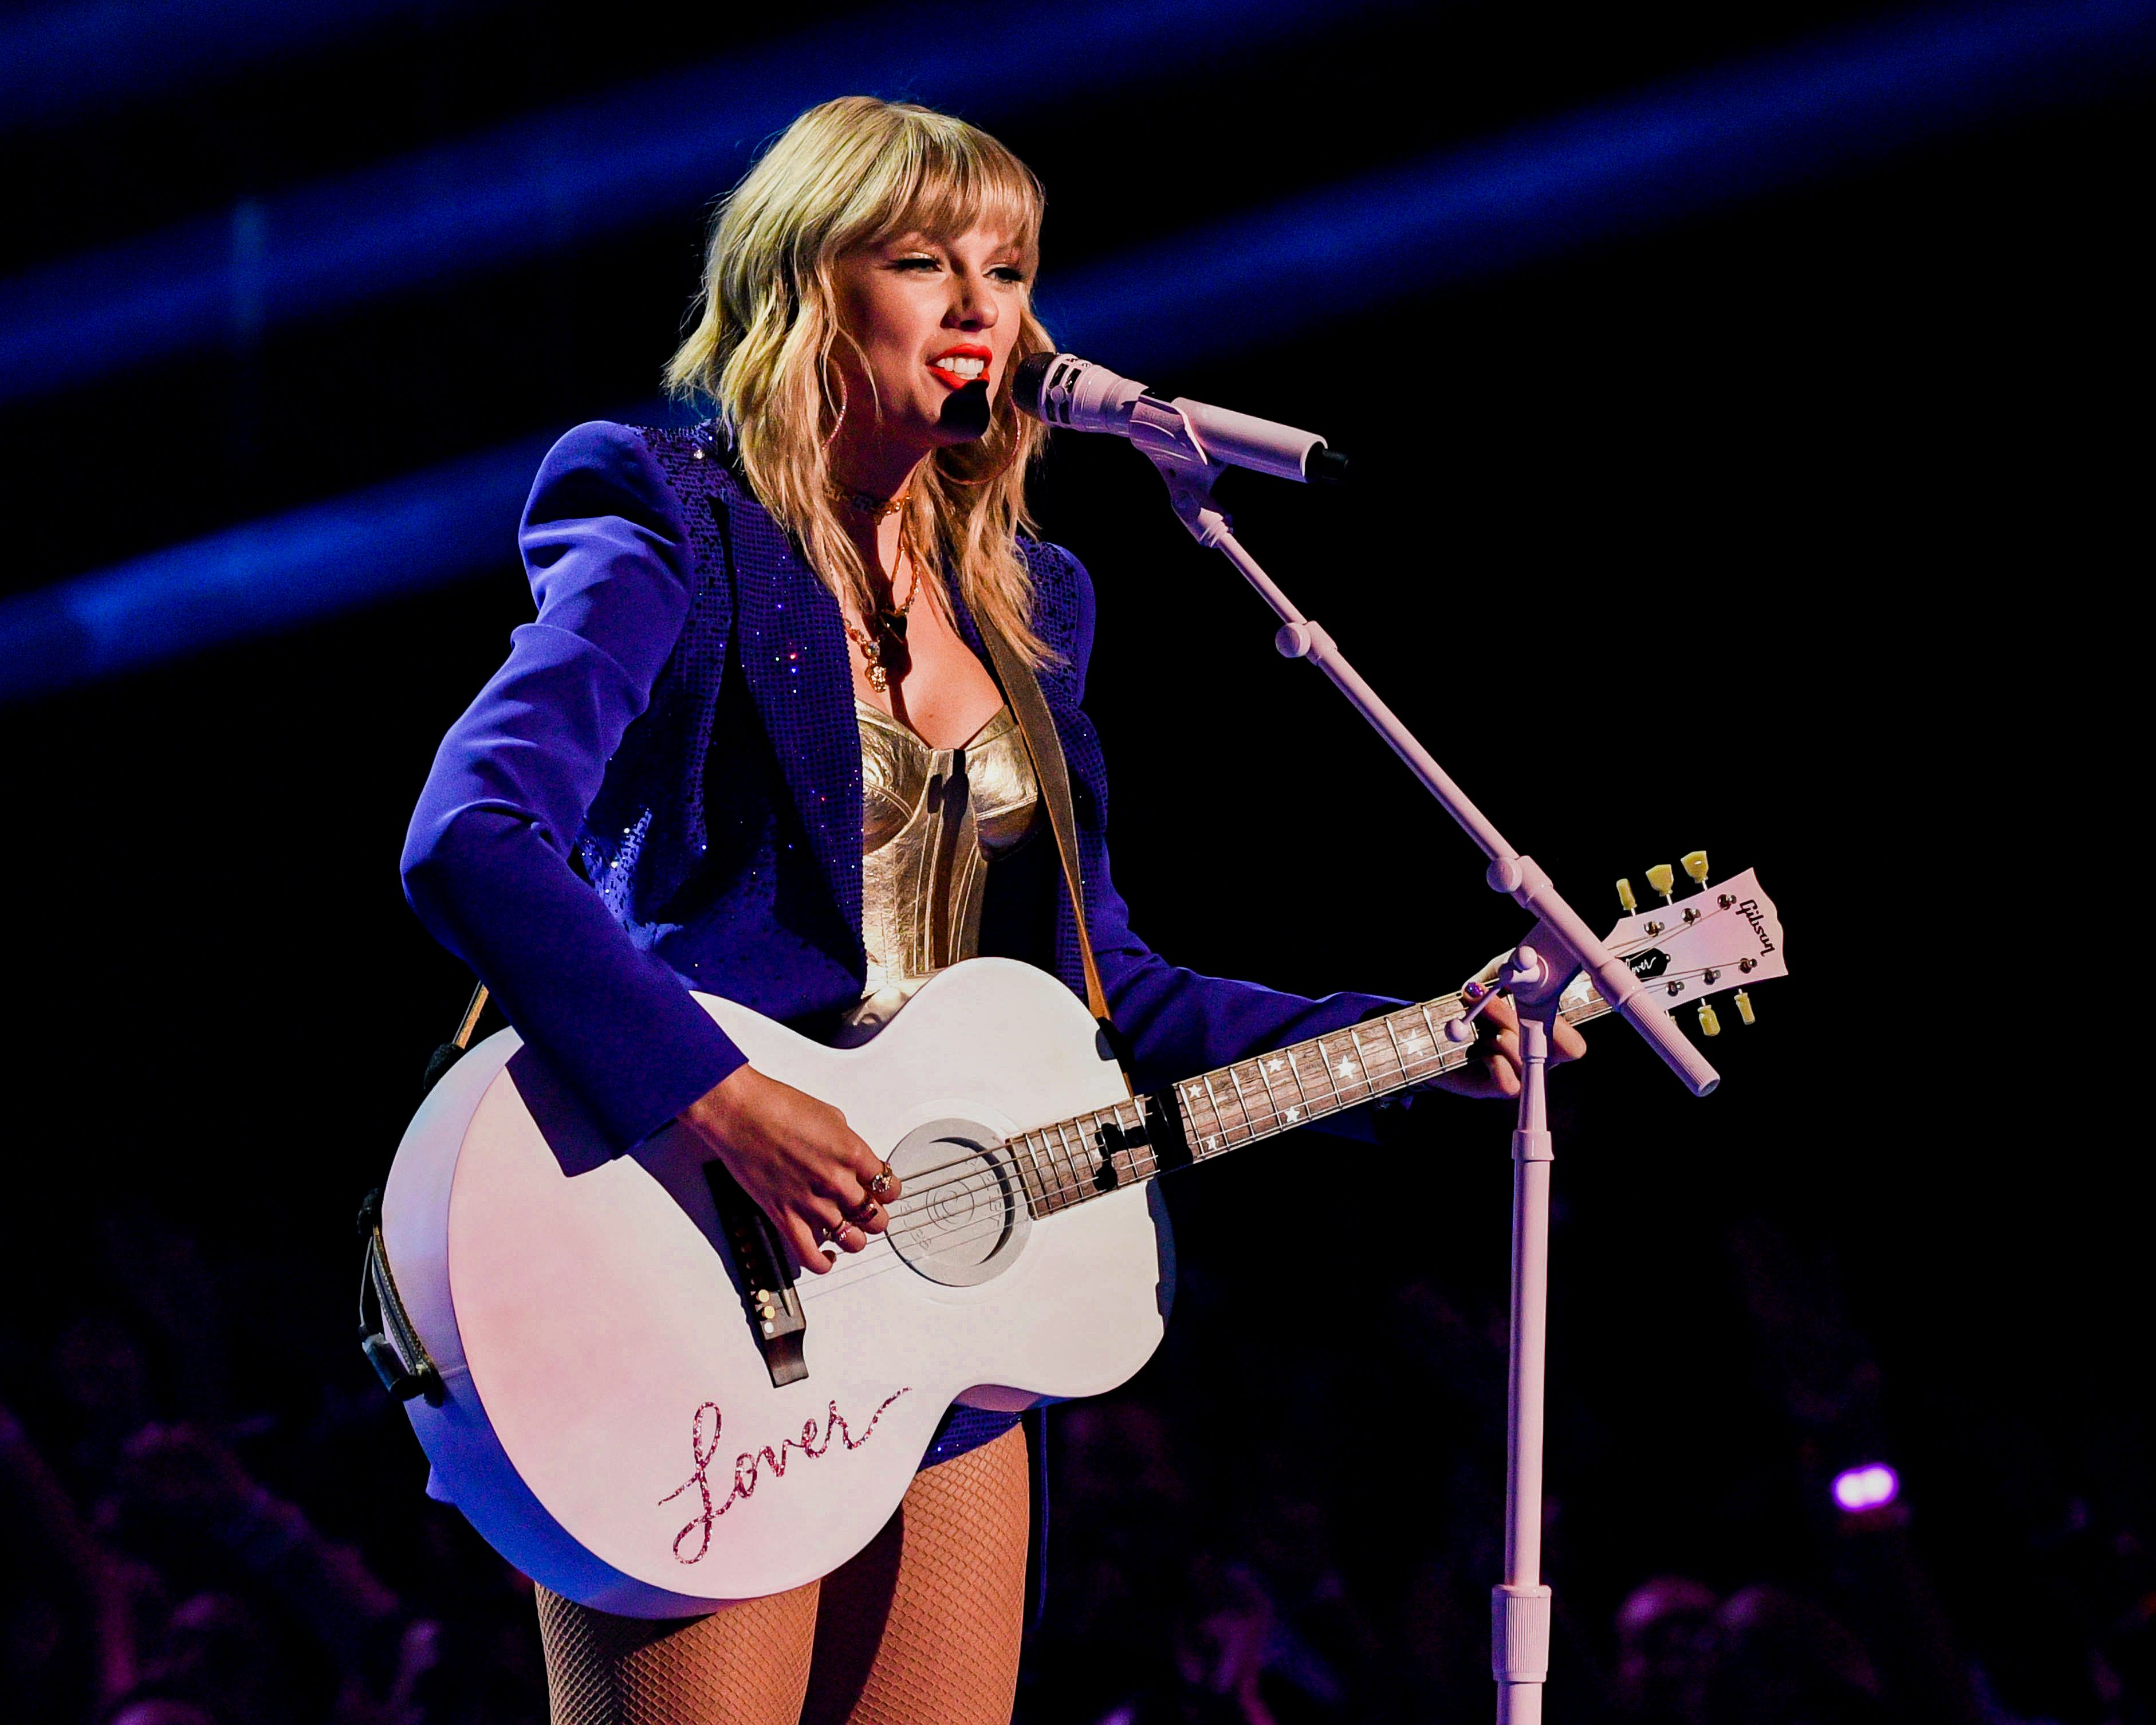 Taylor Swift Announces Free Atlanta Concert During March Madness Rolling Stone